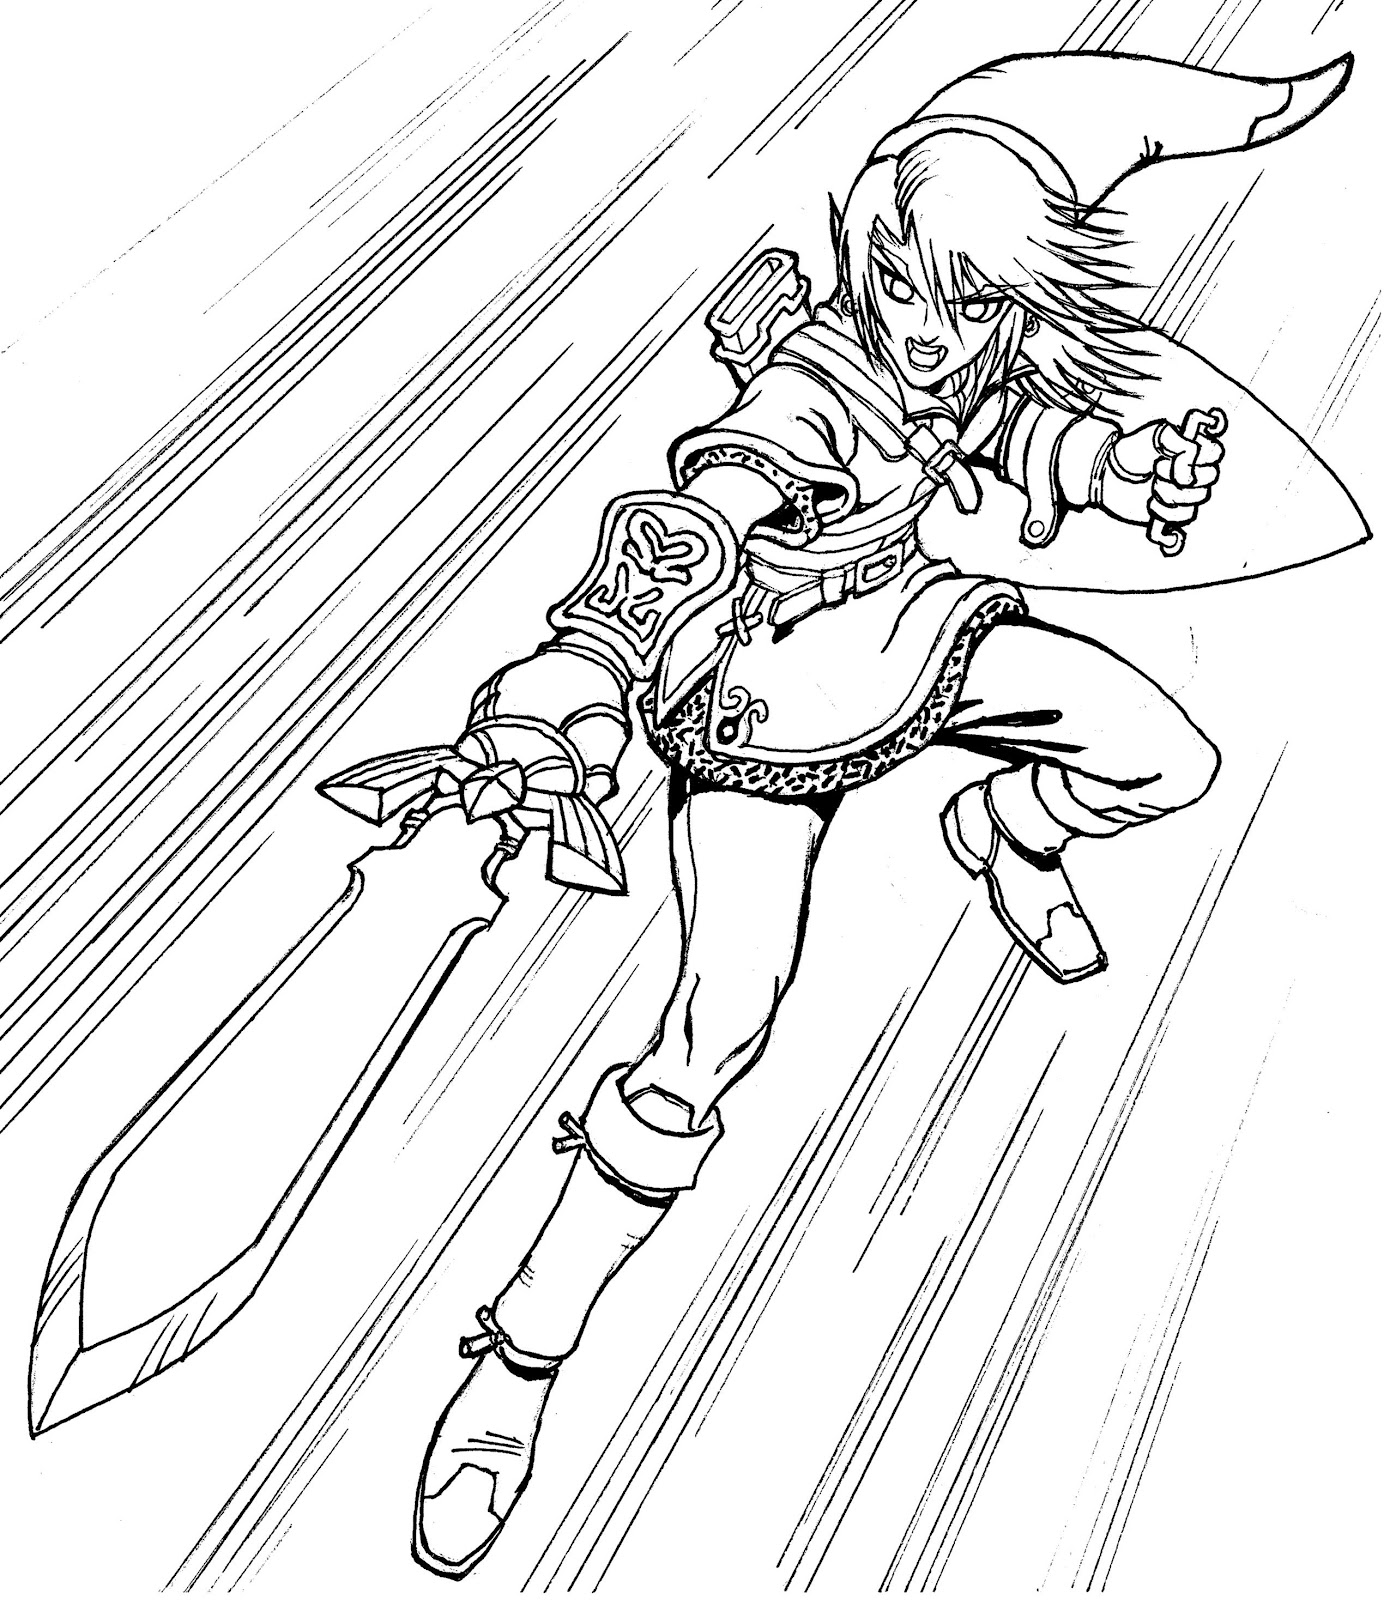 Link Hyrule Warriors Coloring Pages Coloring Pages